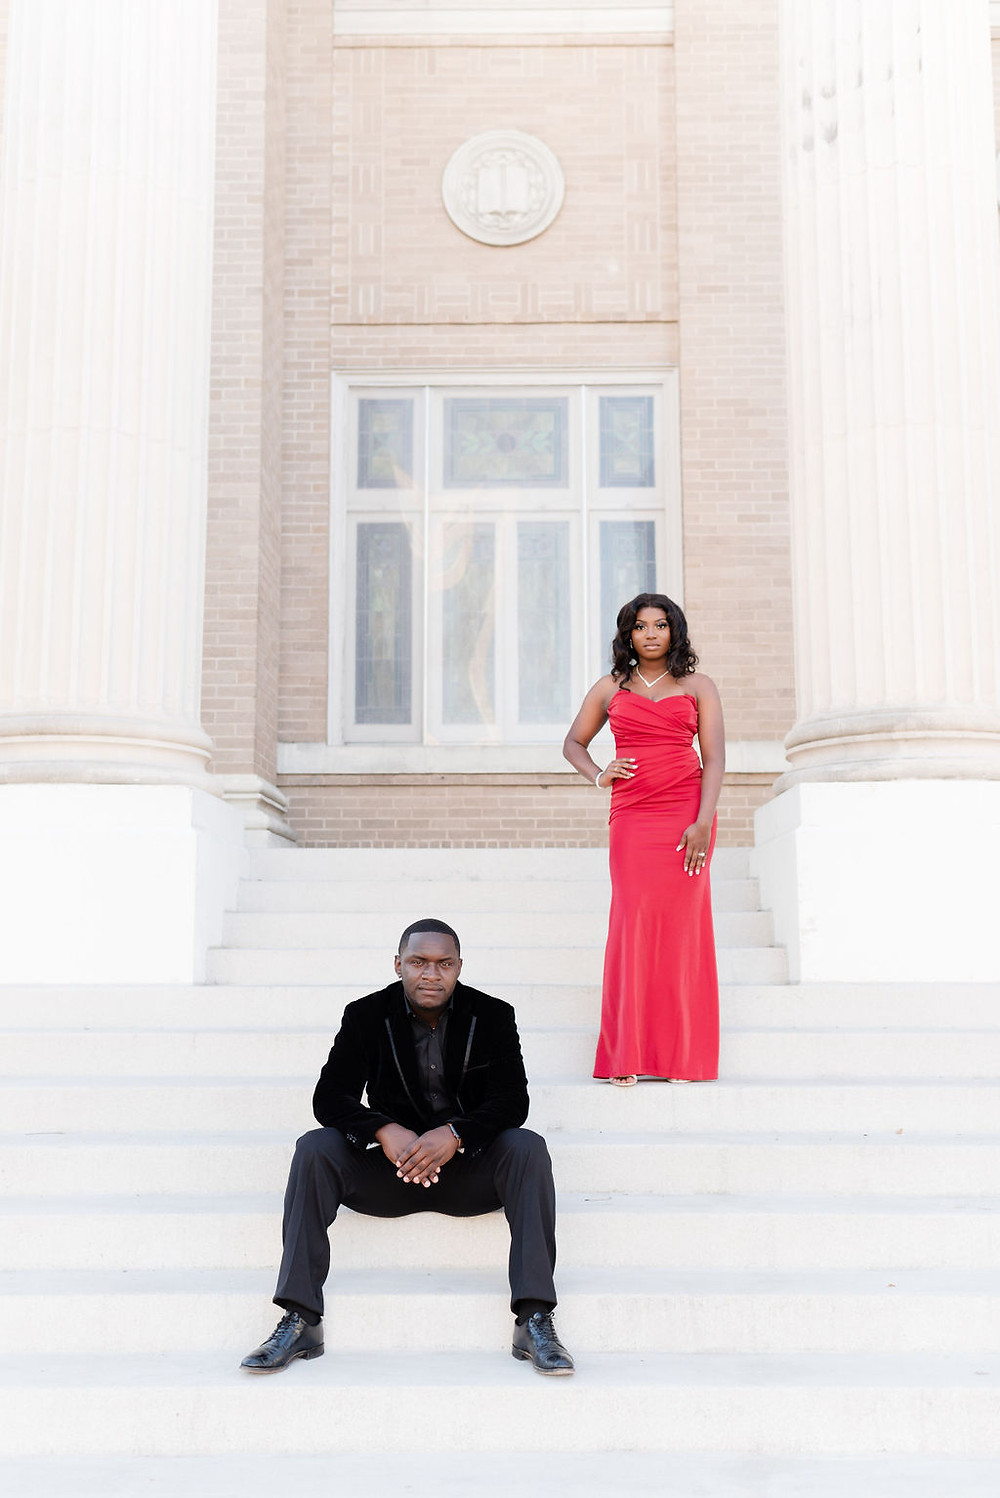 formal engagement session in downtown austin at first methodist united church . guy is sitting on the stairs, facing the camera. girl is standing on stairs a few stairs behind him with her hand on their hip. formal, serious engagement session pose. there are tall columns on either side of them